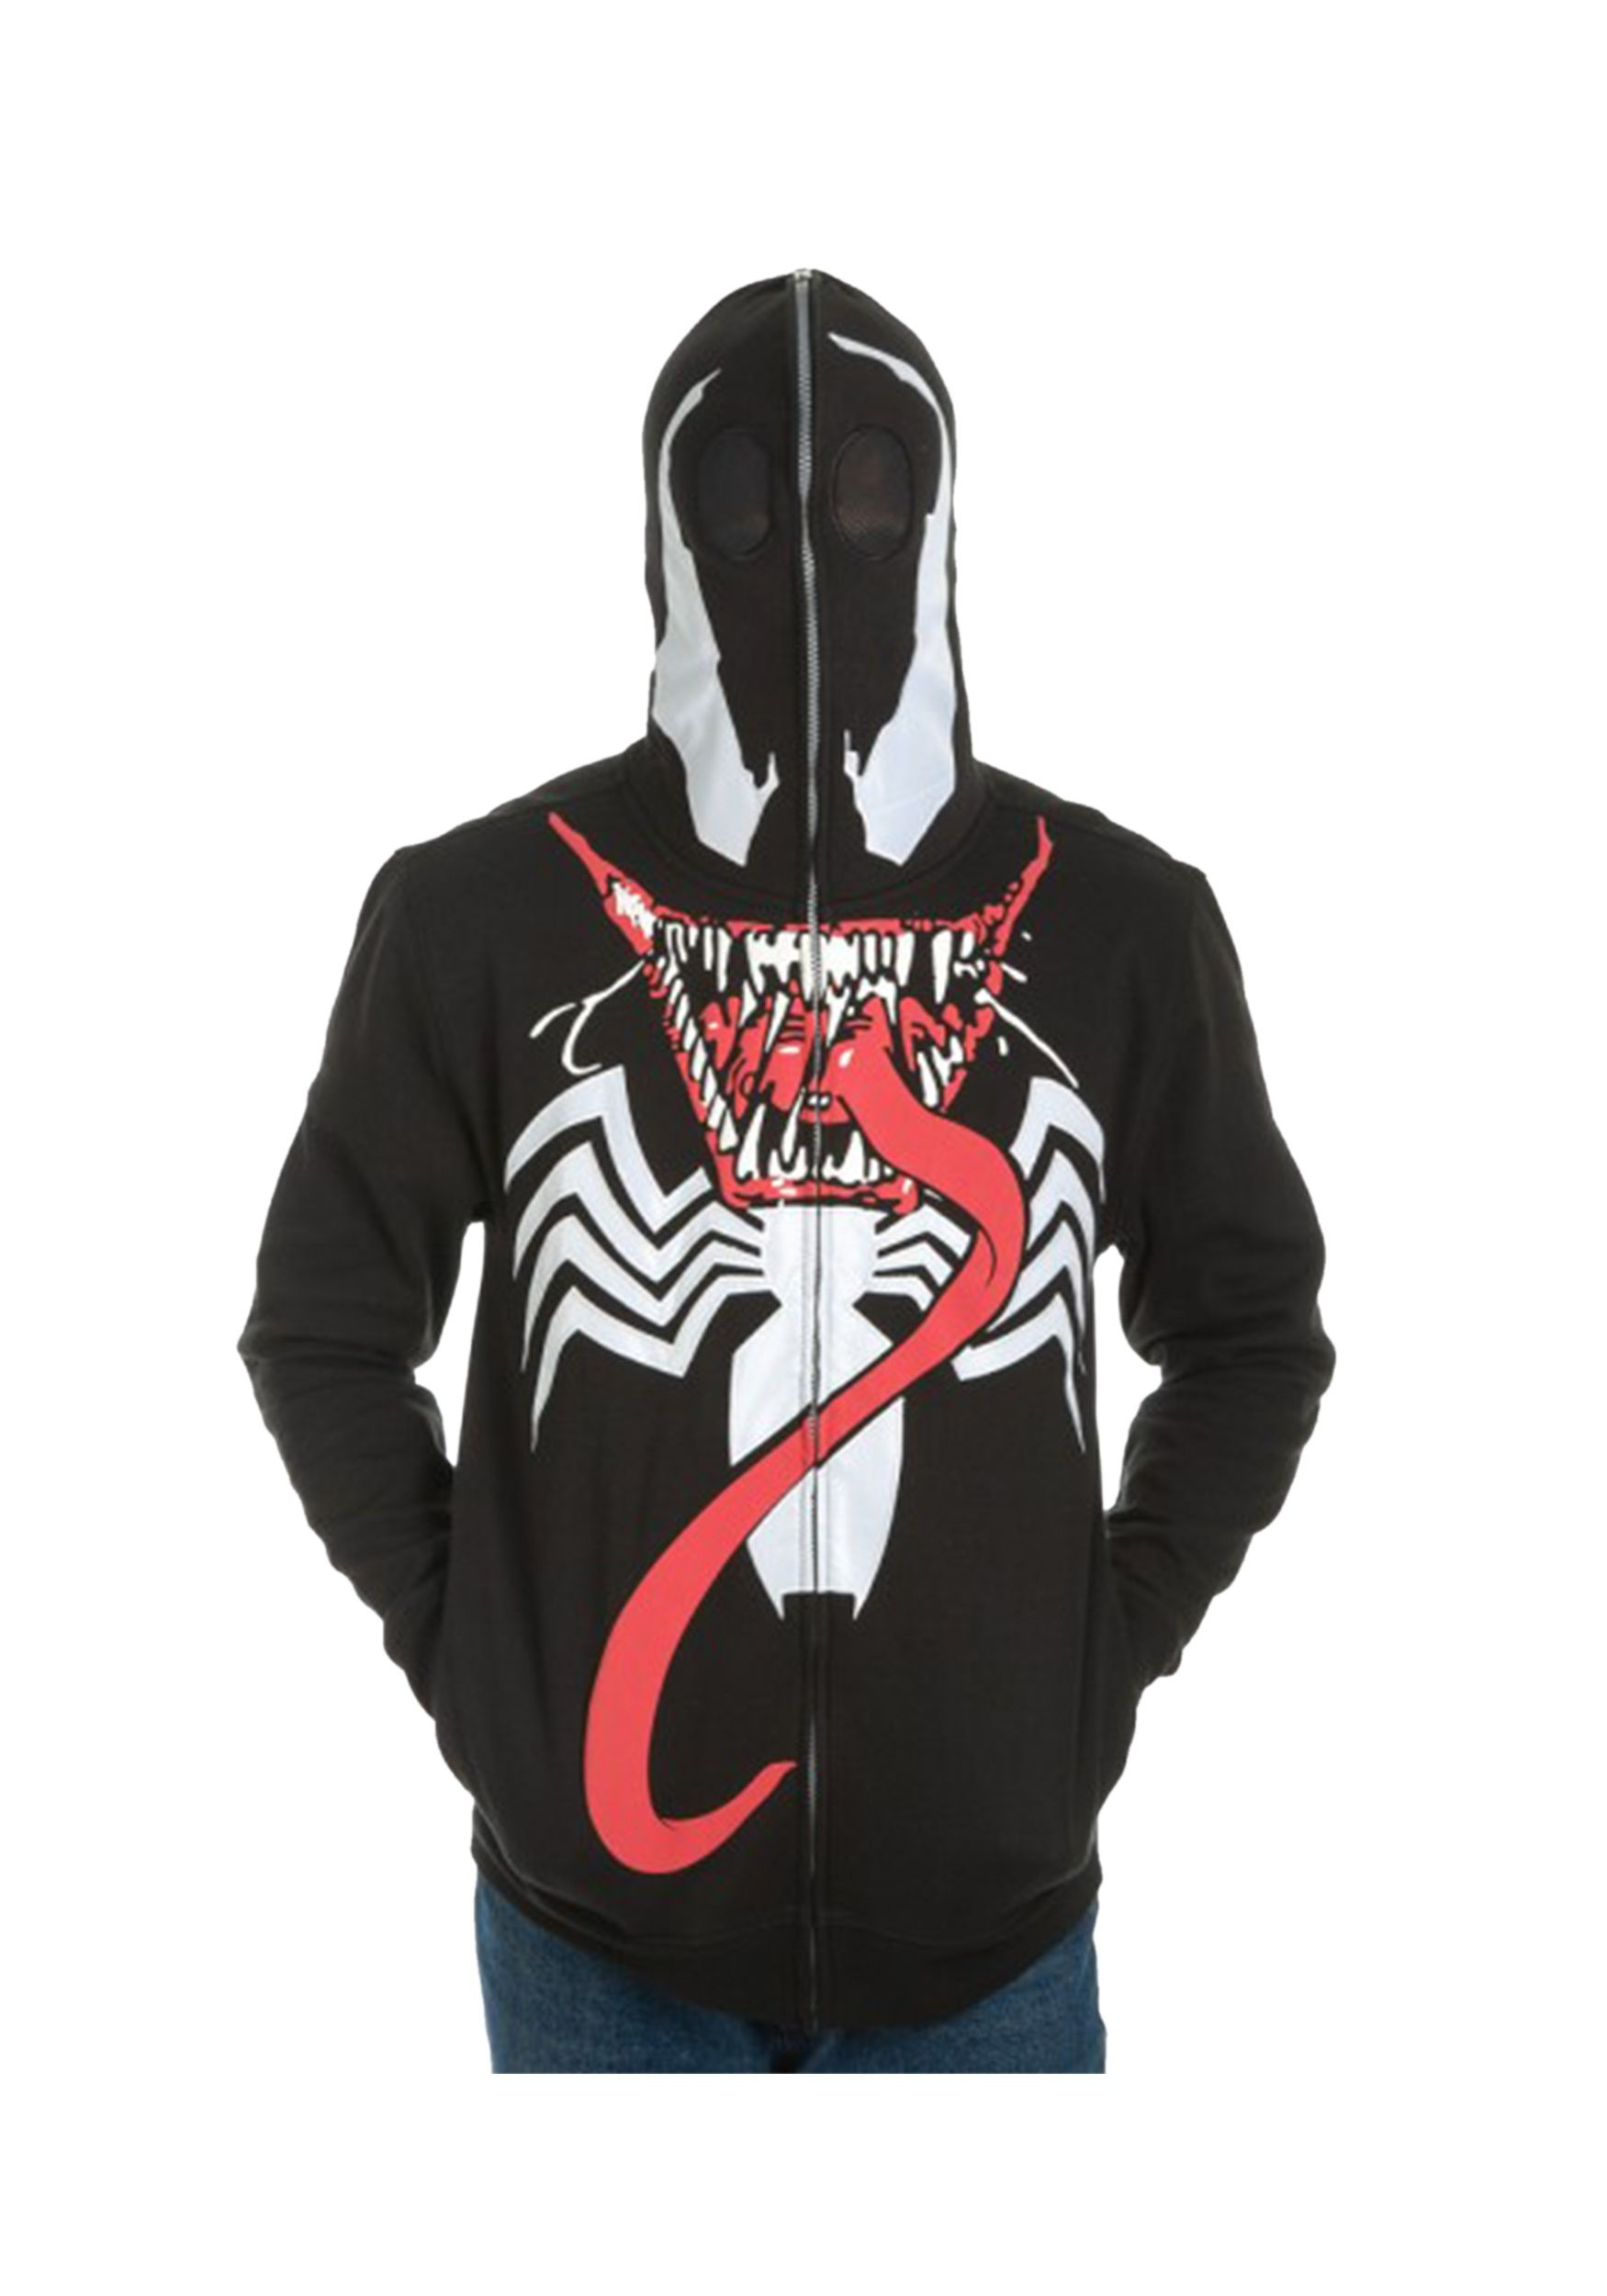 Venom Full Zip Mask Hoodie Hoodies, Spiderman costume